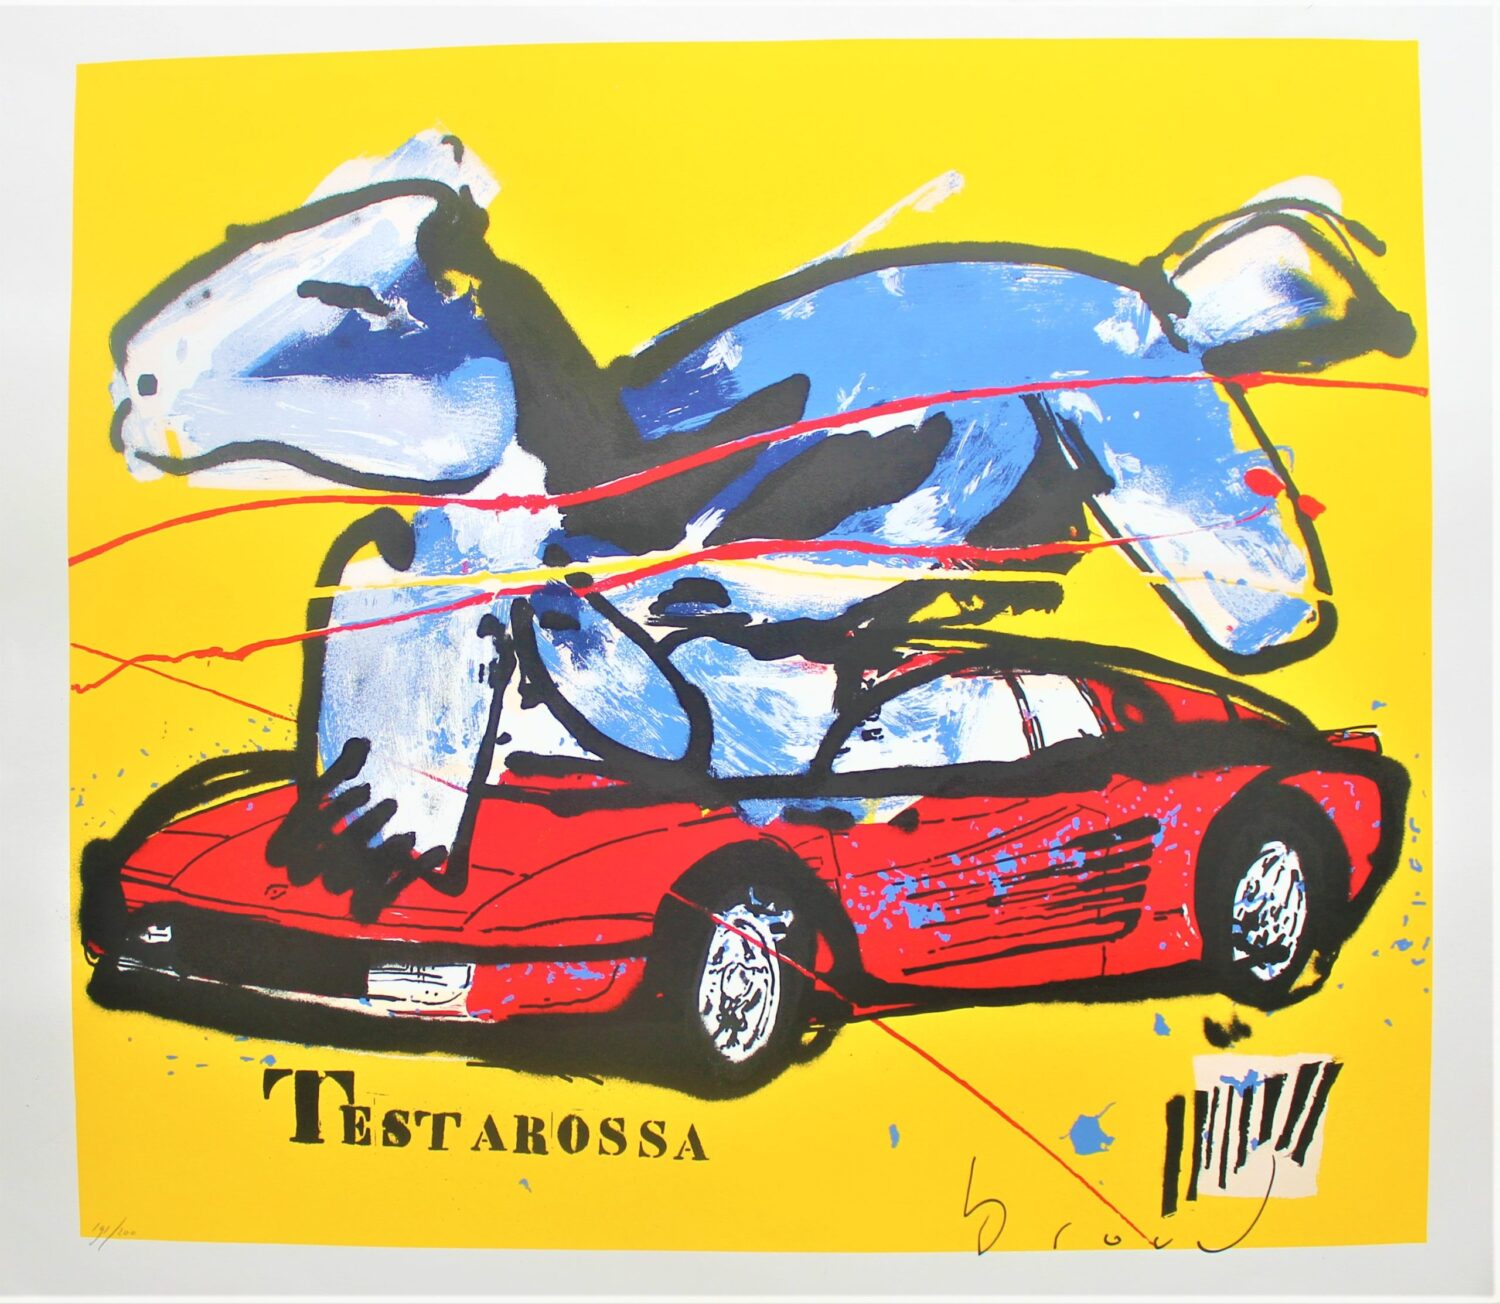 Herman Brood testarossa zeefdruk